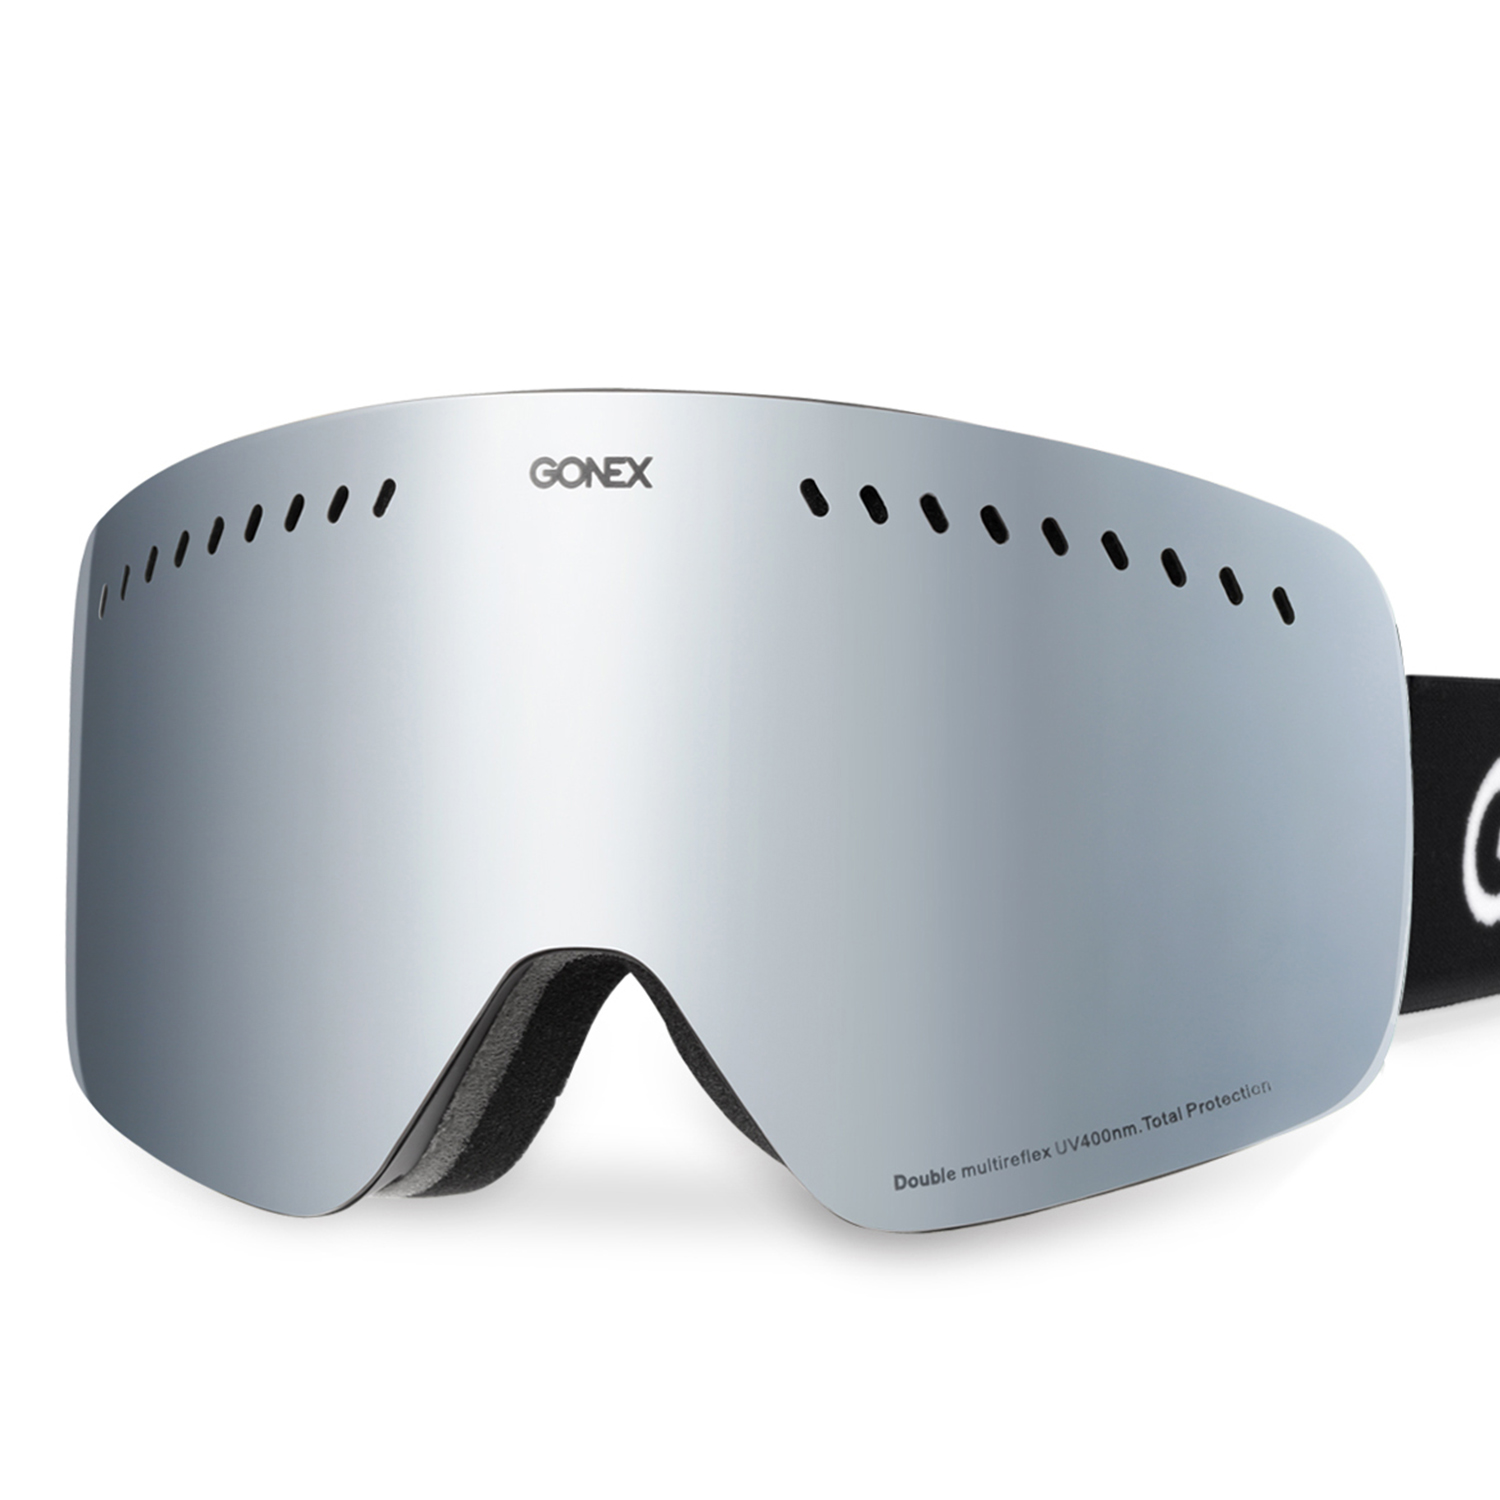 Gonex Ski Goggles Double Cylindrical Lens Anti-fog UV400 Protection for Double board skiing by Gonex